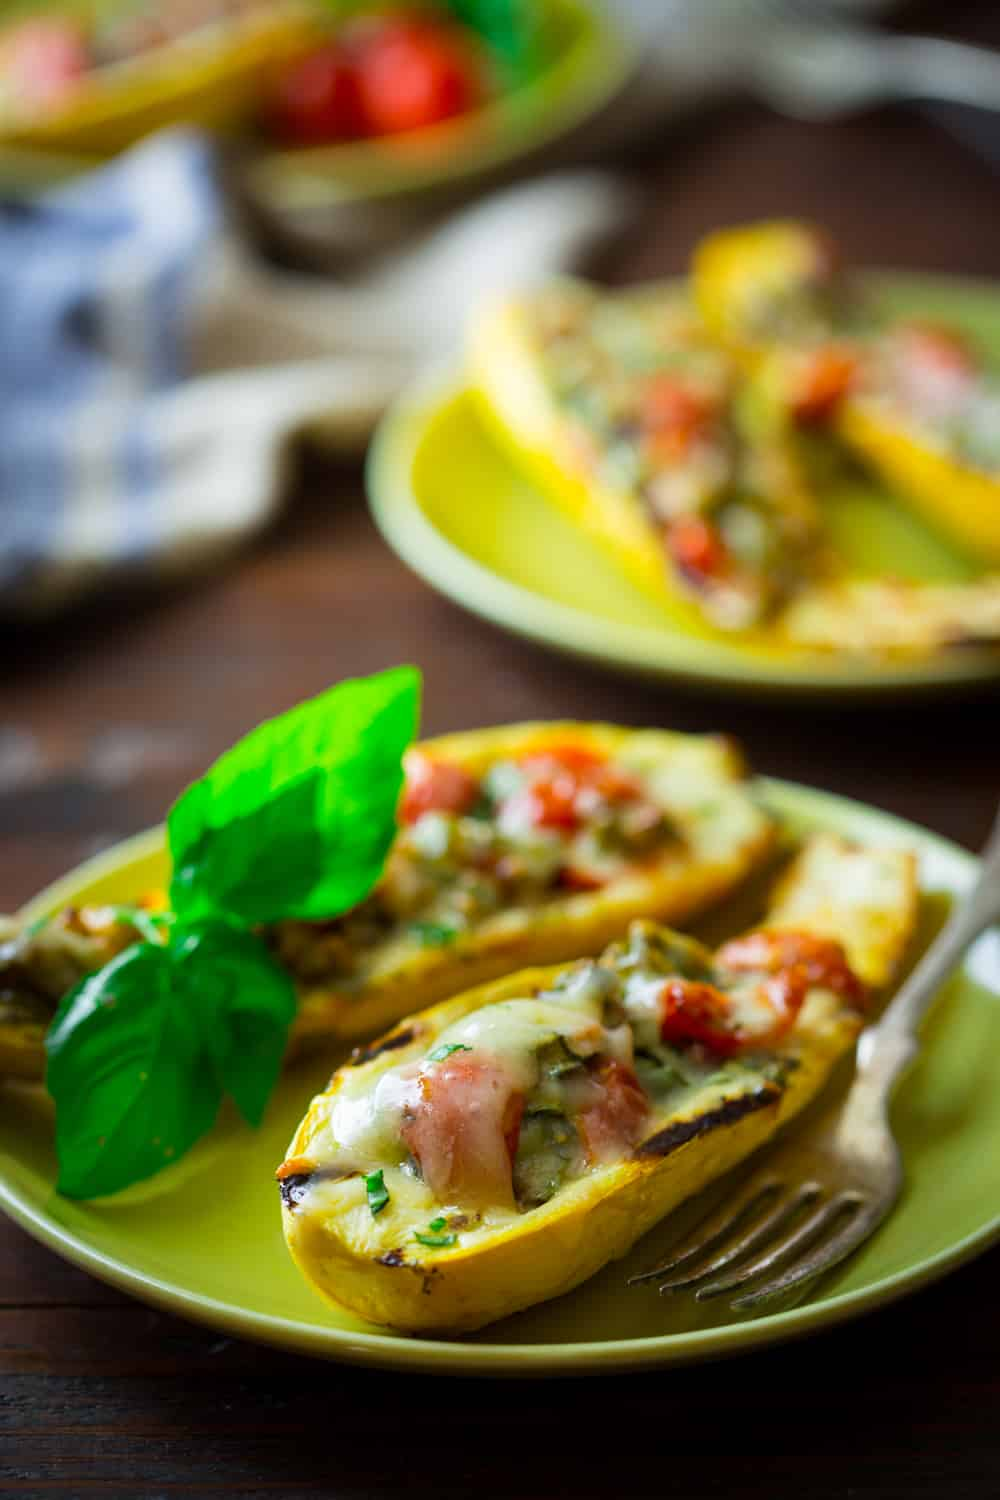 Vegetarian Grilled Summer Squash Boats with Peppers and Cheddar on healthyseasonalrecipes.com #glutenfree